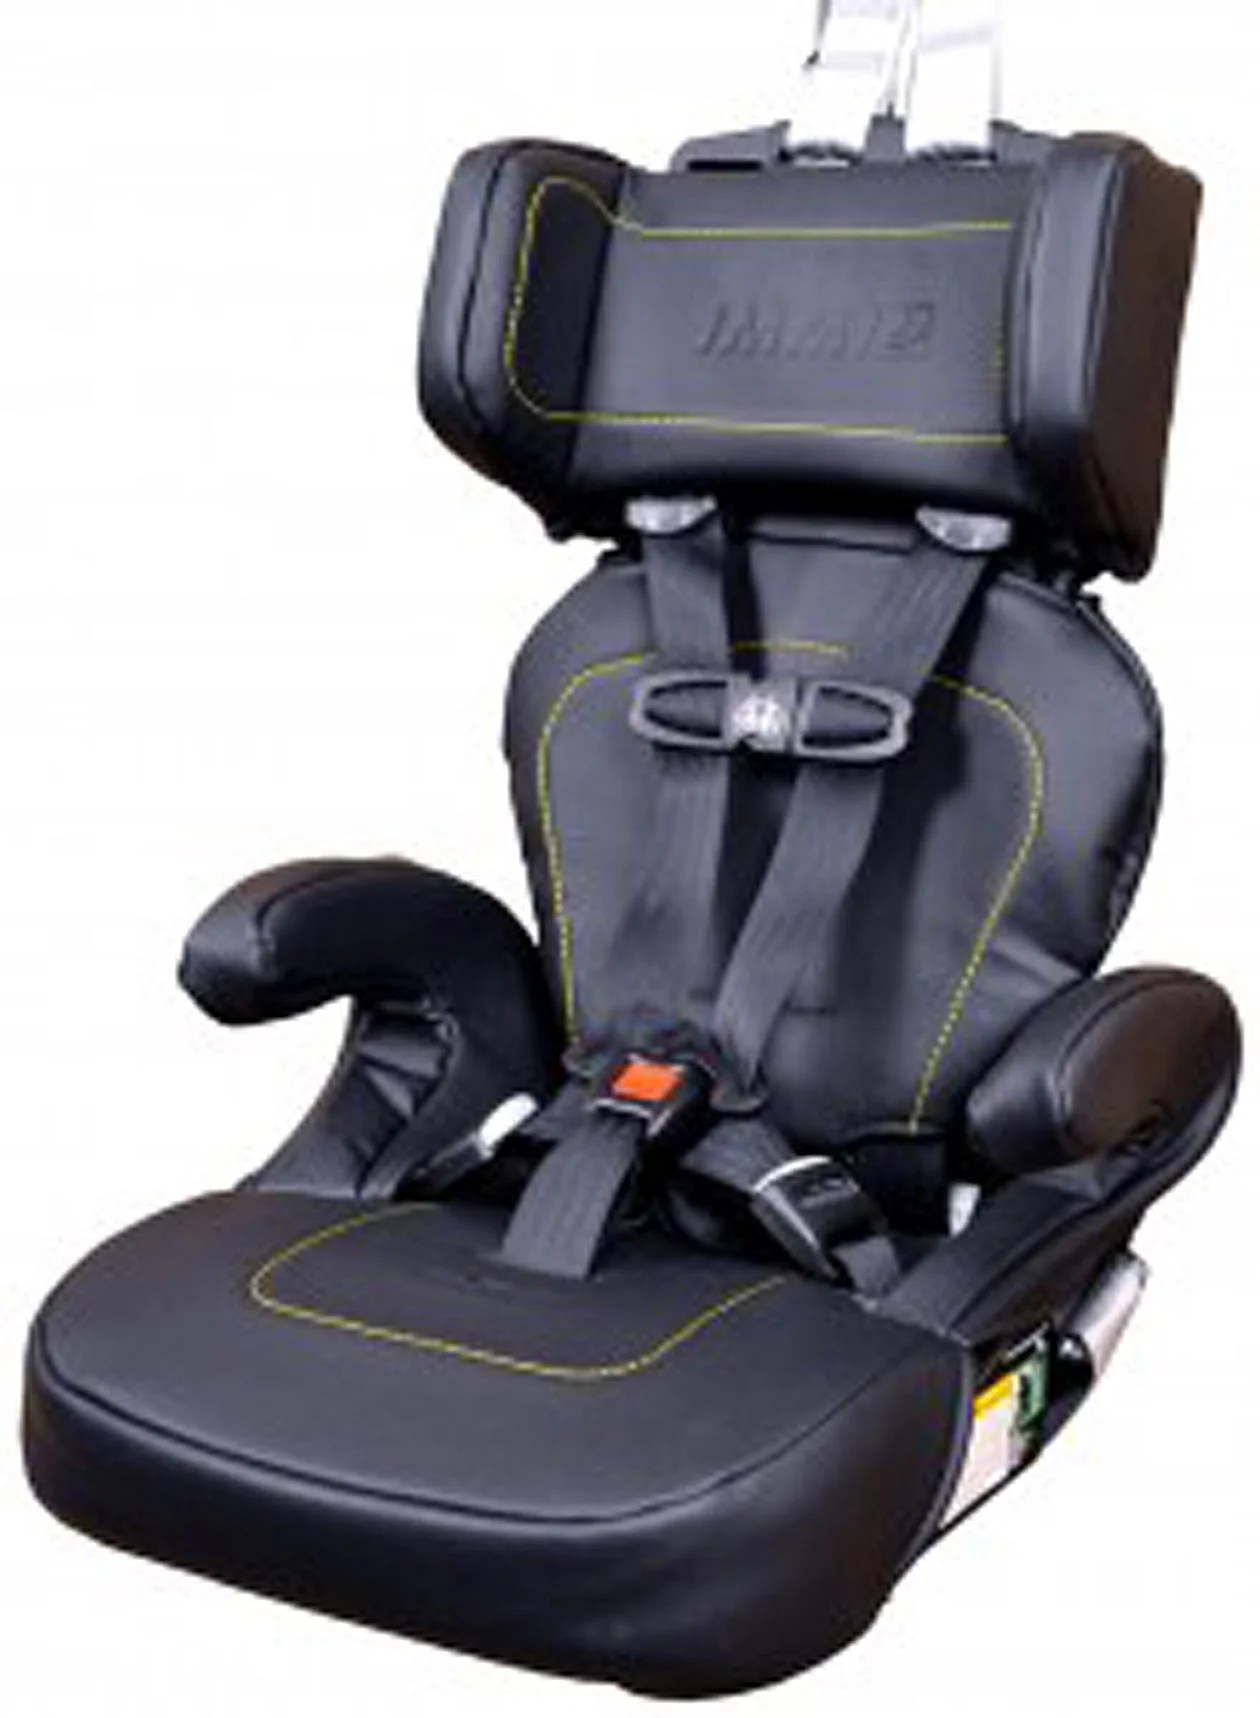 Calmly Combi Which Weighs Costs About While Coscoscenera Which Weighs Costs About Families Who Take Taxis Turn To Portable Car Lifestyle News Cosco Booster Seat Expiration Cosco Booster Seat Replaceme baby Cosco Booster Seat